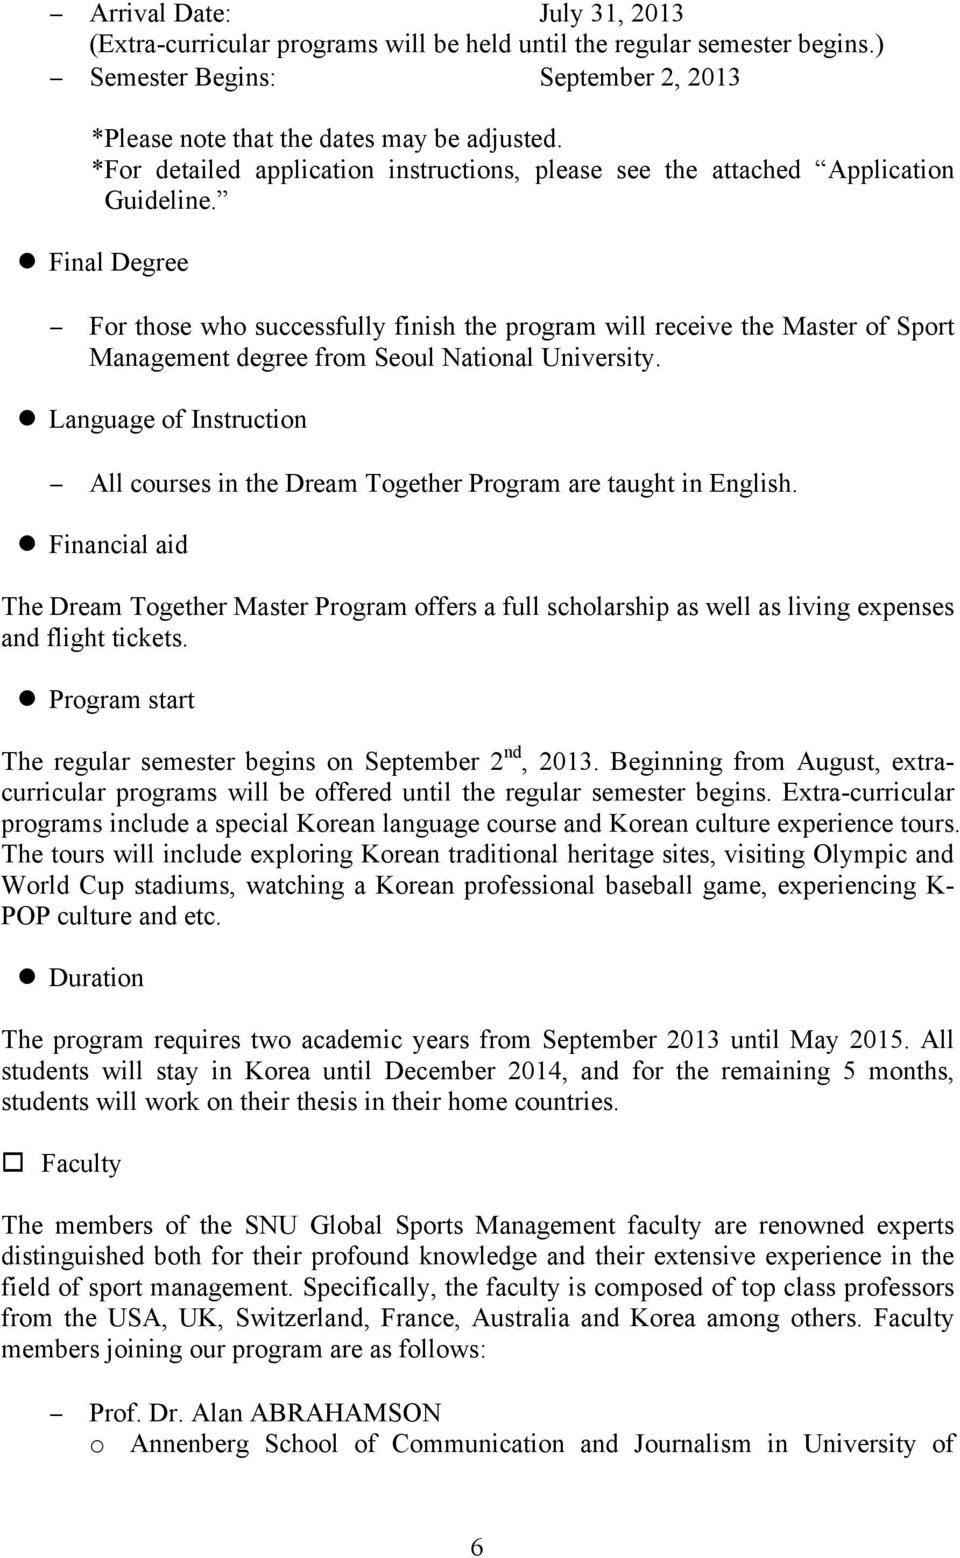 Final Degree For those who successfully finish the program will receive the Master of Sport Management degree from Seoul National University.